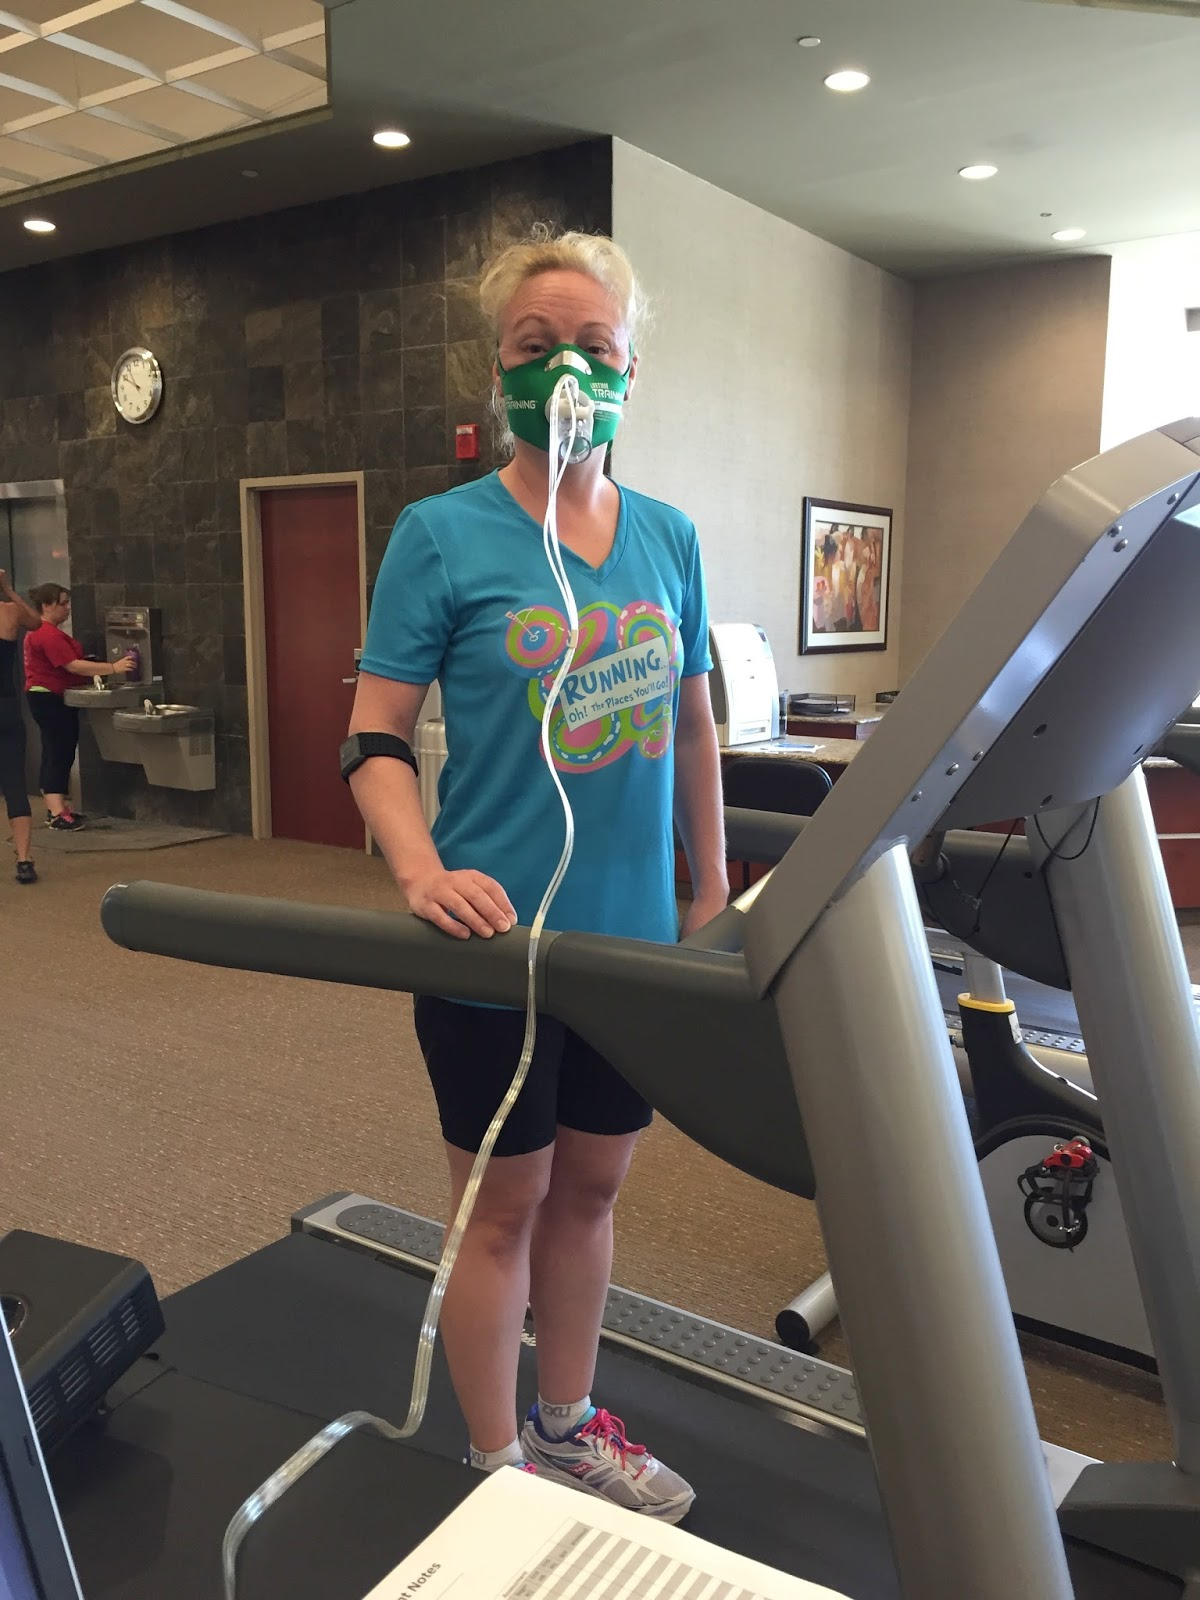 Kim Smiles Through Miles Vo2 Max And Heart Rate Zones